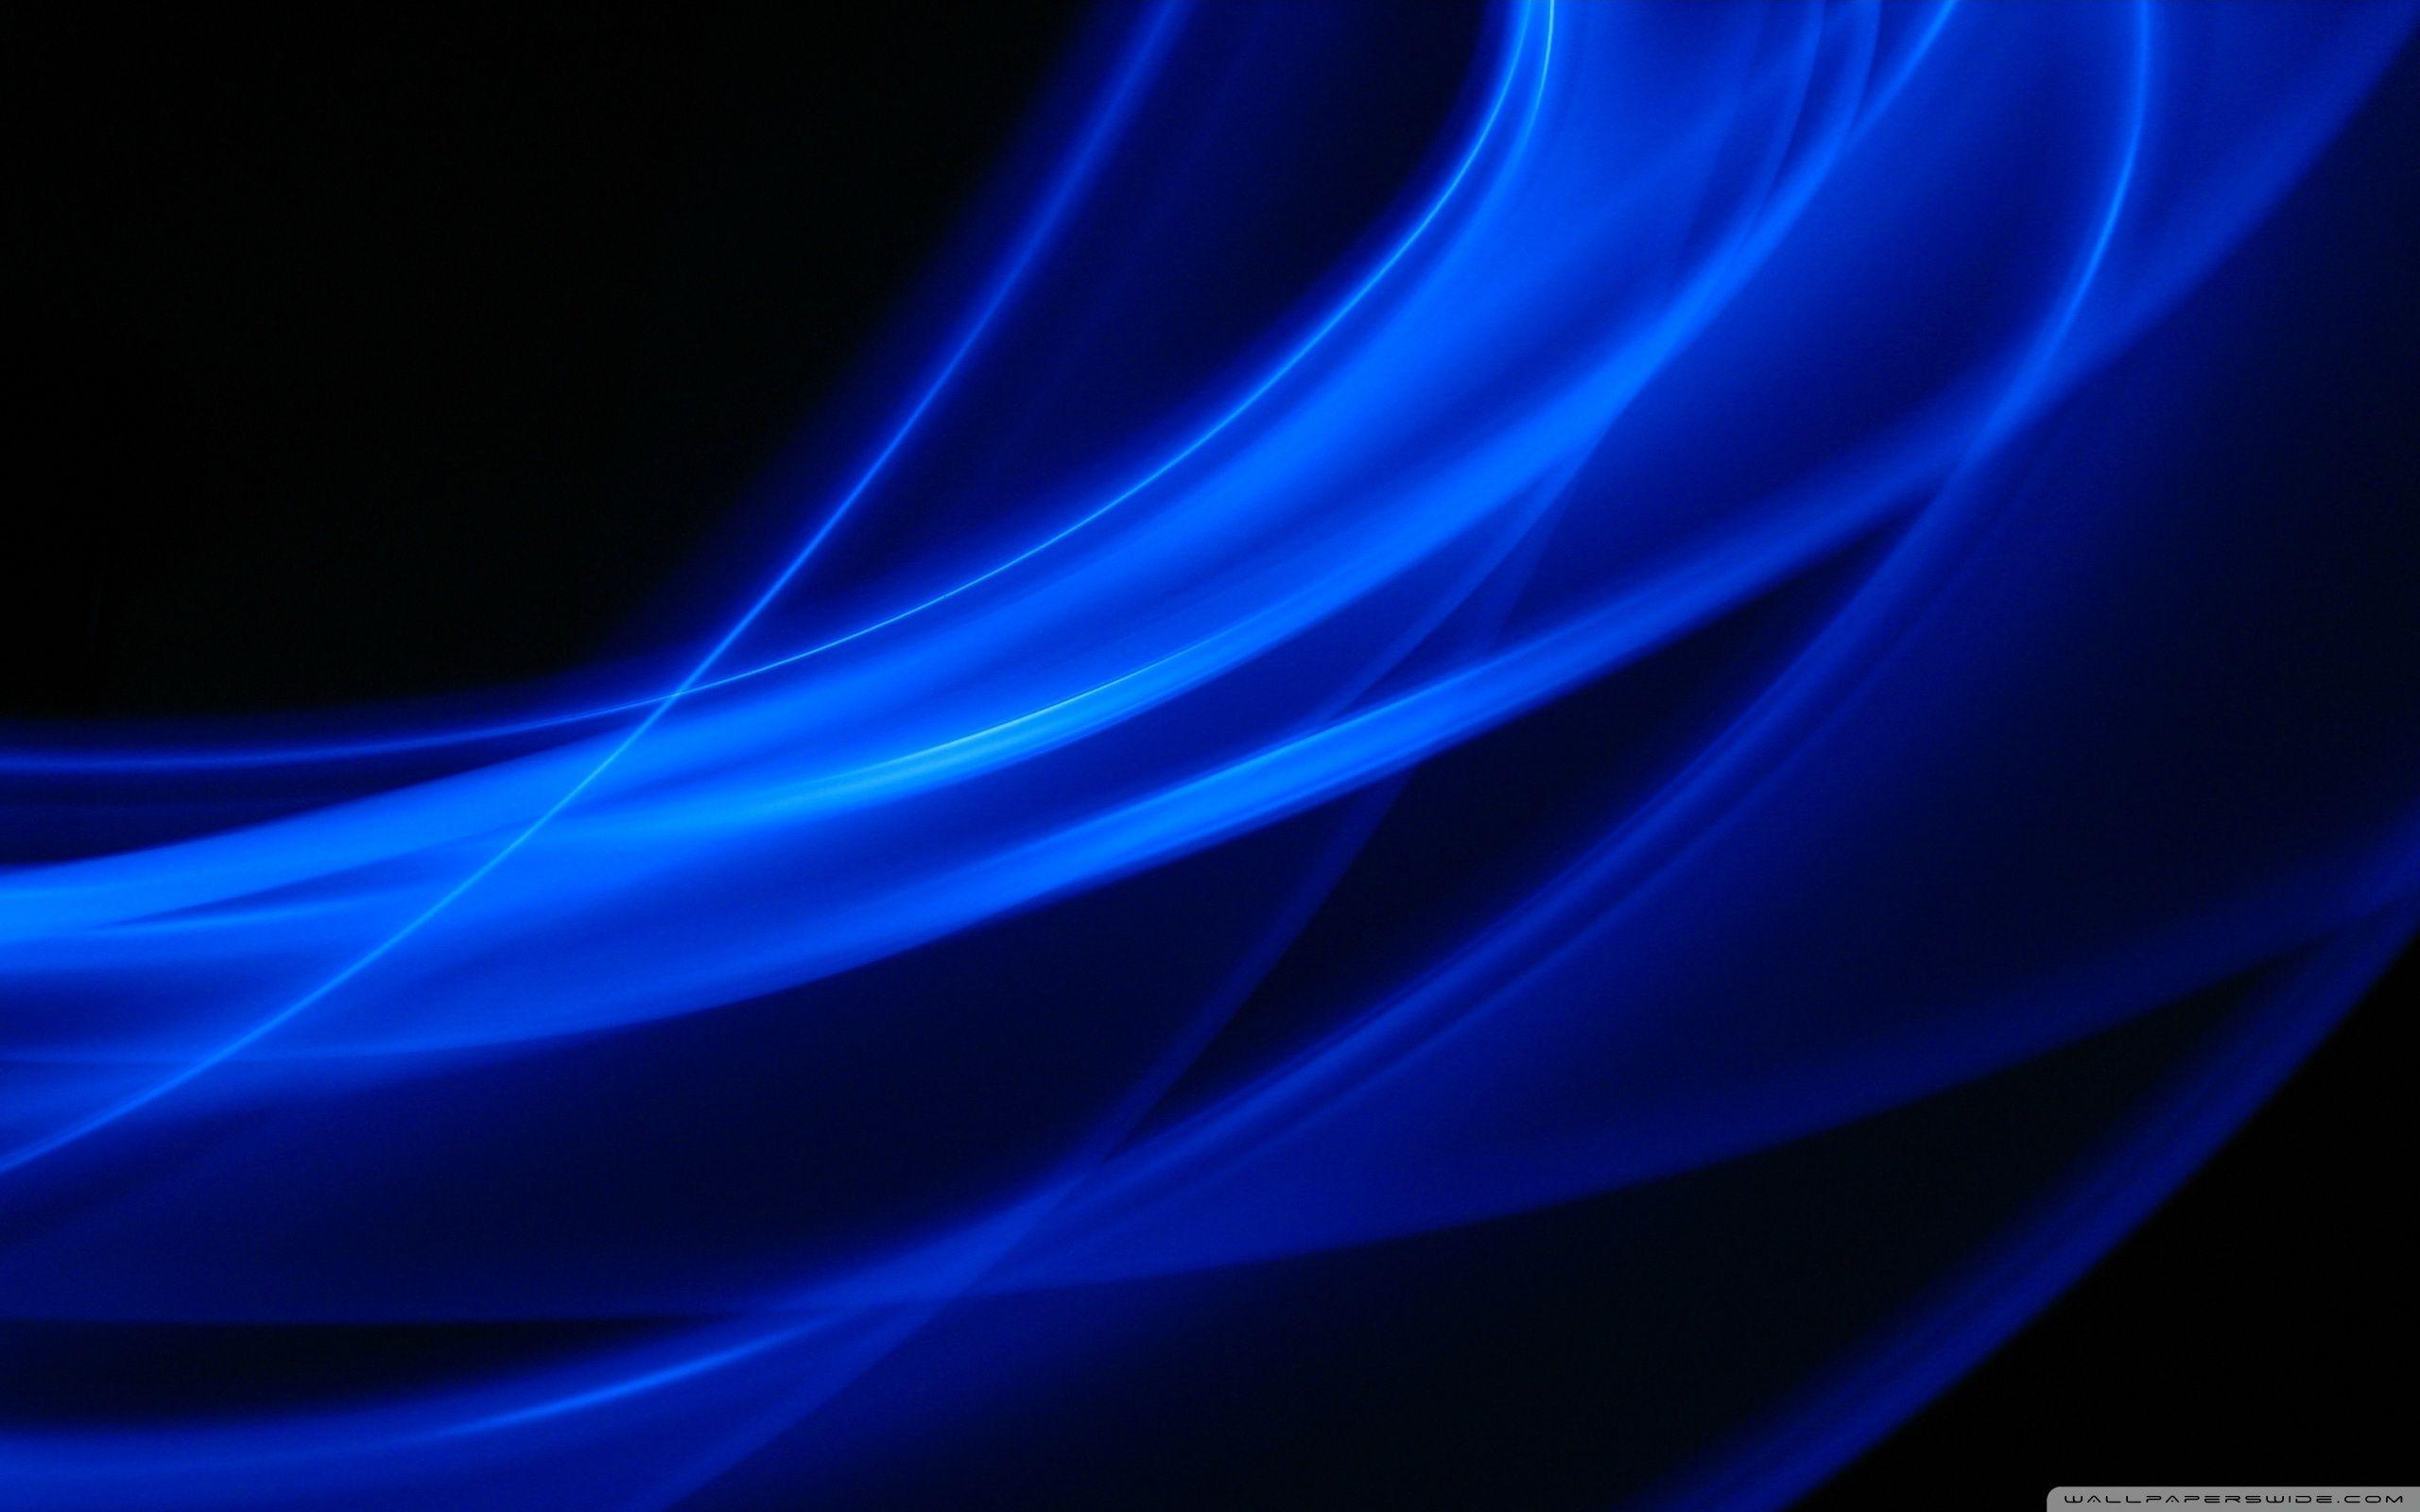 Aero Dark Blue 4k Hd Desktop Wallpaper For Ultra Tv Wide